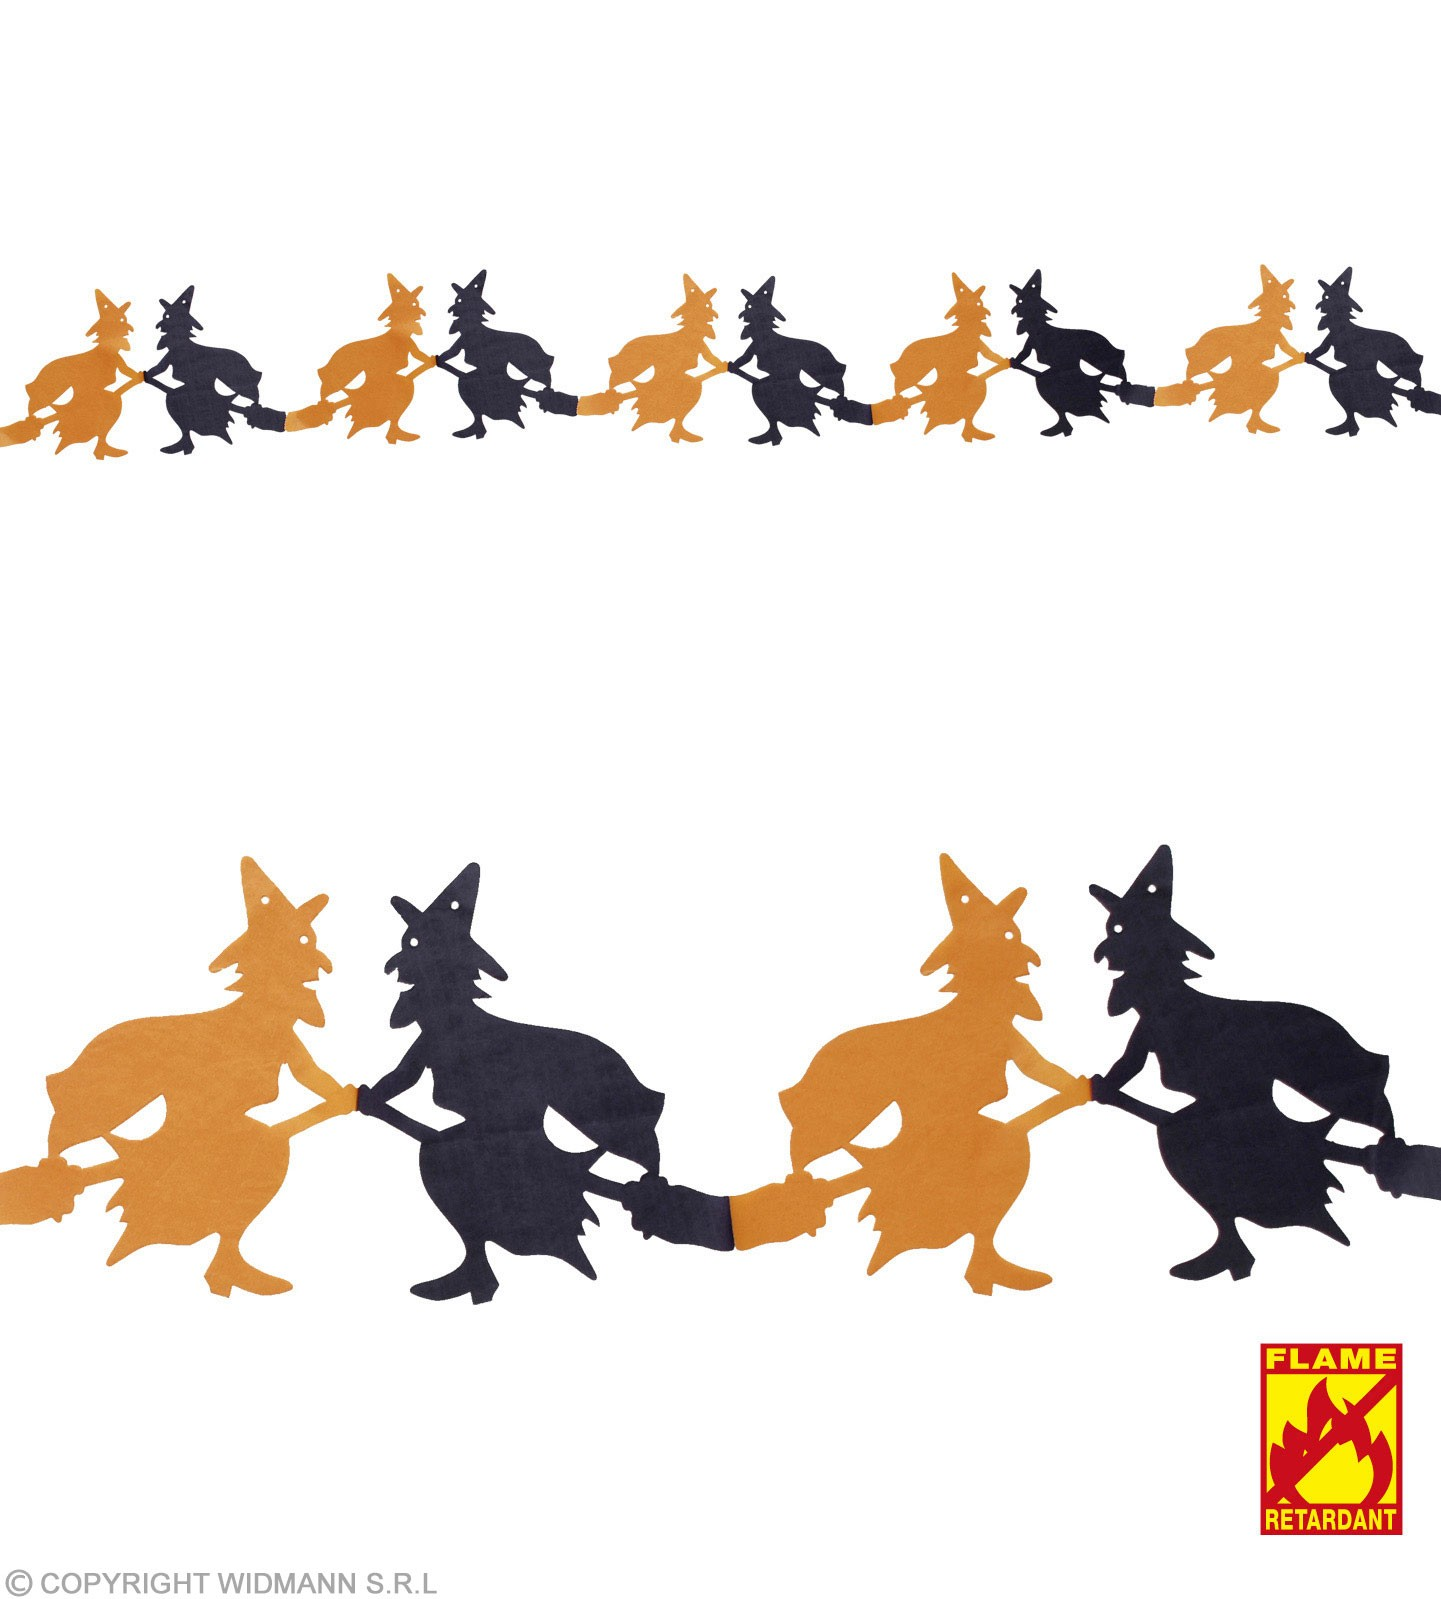 Garland 3M Flme Ret Witch - Fancy Dress (Halloween)